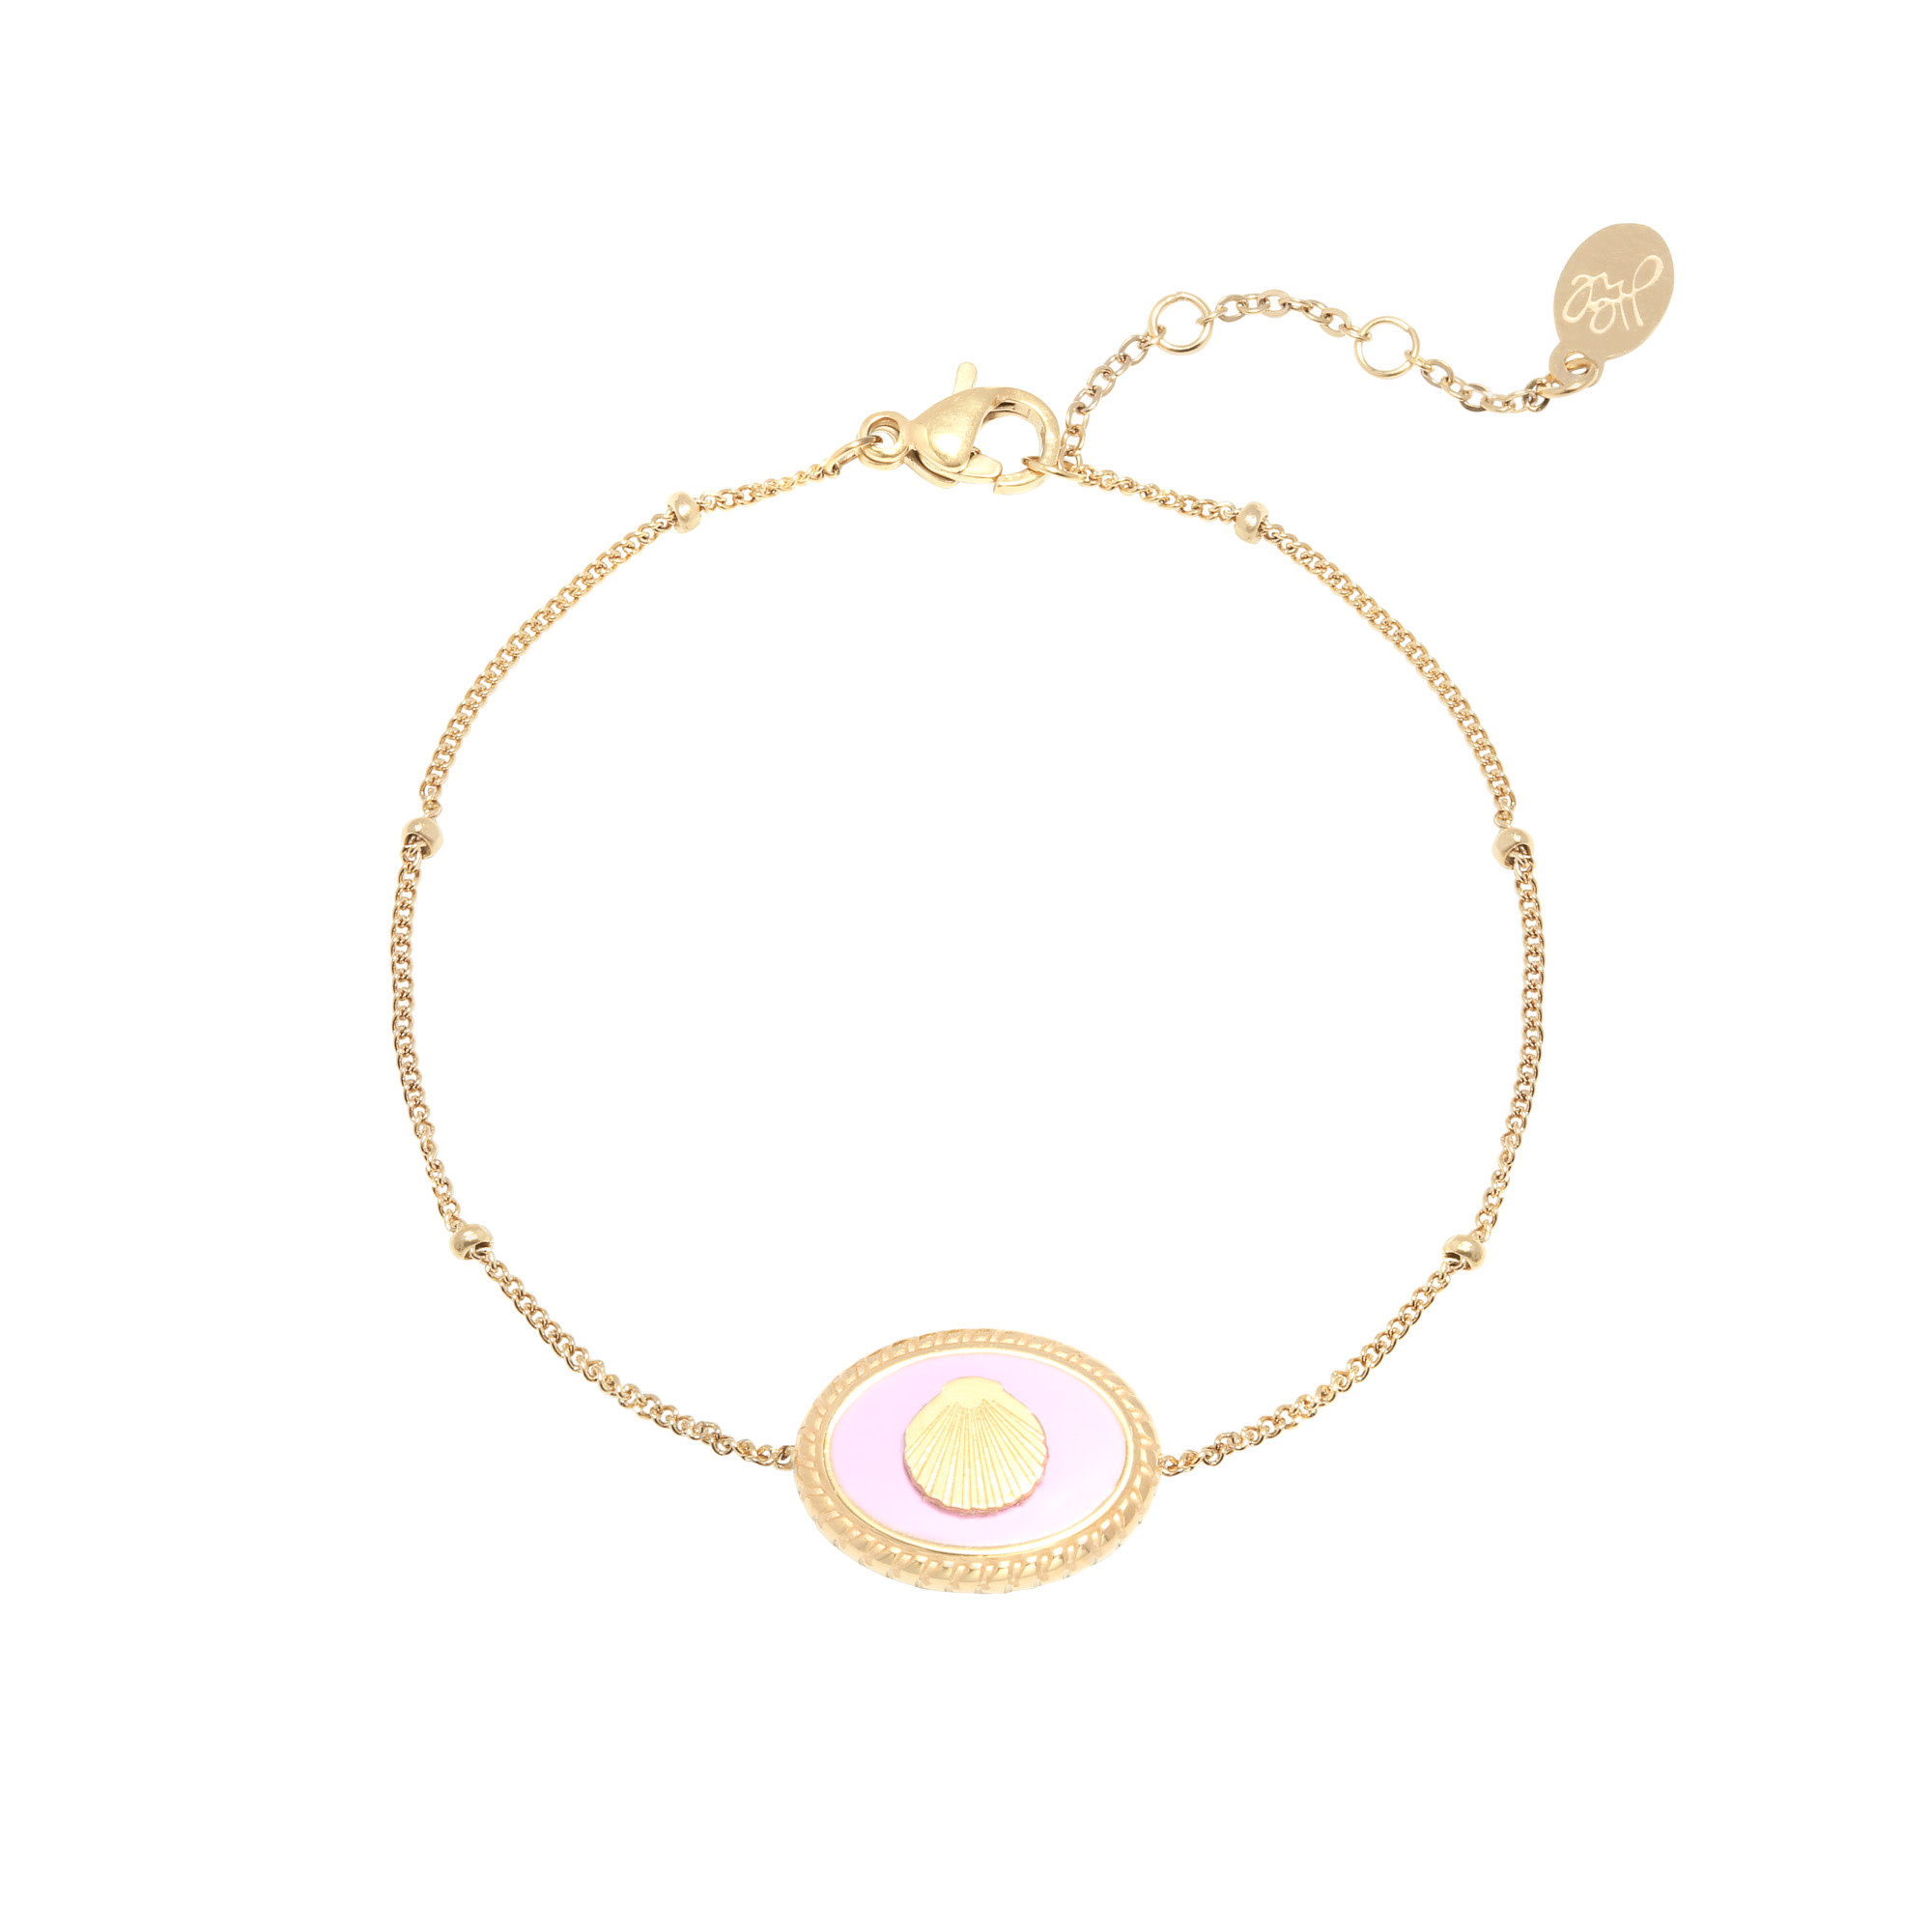 With love Bracelet charming shell pink